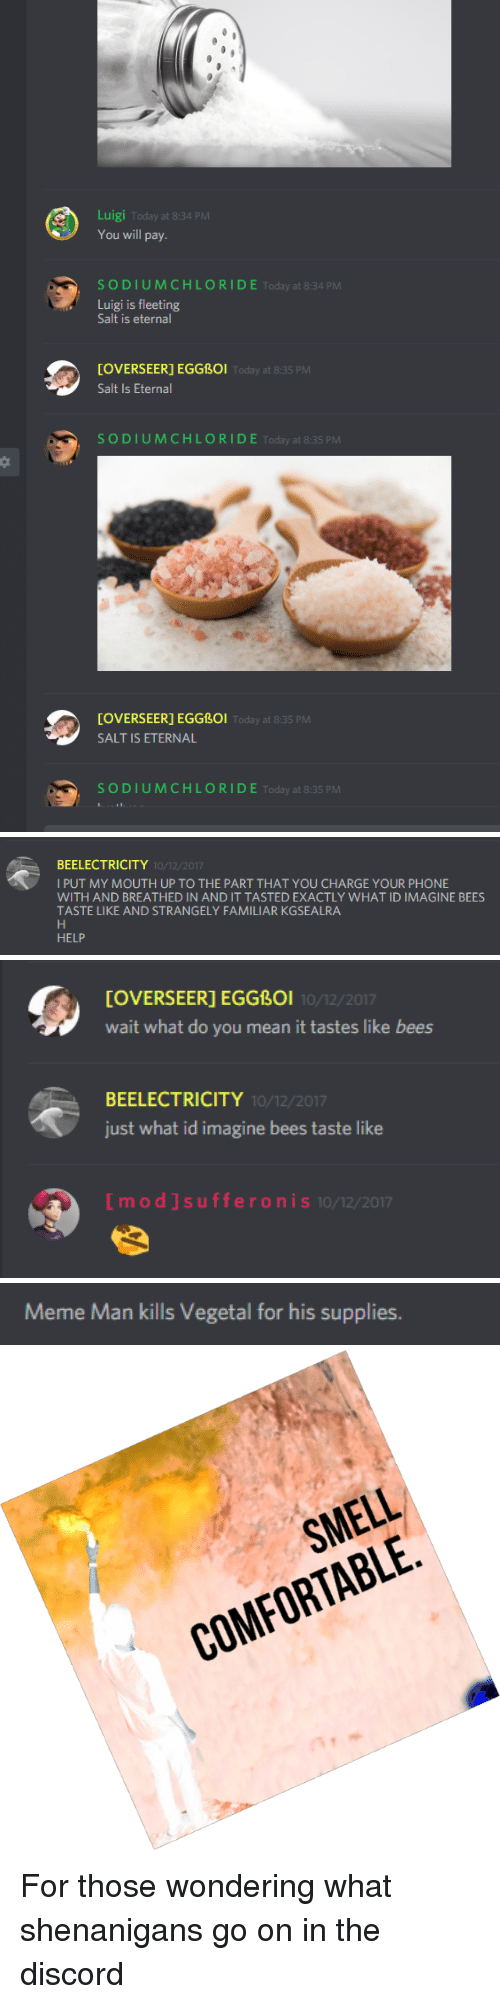 Vegetal: Luigi Today at 8:34 PM  You will pay.  SODIUMCHLORIDE Today at 8:34 PM  Luigi is fleeting  Salt is eternal  [OVERSEER] EGGBOi  Salt Is Eternal  Today at 8:35 P  SODIUMCHLORIDE Today at 8:35 PM  [OVERSEER] EGGBOI  SALT IS ETERNAL  Today at 8:35 PM  SODIUMCHLORIDE Today at 8:35 PM   BEELECTRICITY  I PUT MY MOUTH UP TO THE PART THAT YOU CHARGE YOUR PHONE  WITH AND BREATHED IN AND IT TASTED EXACTLY WHAT ID IMAGINE BEES  TASTE LIKE AND STRANGELY FAMILIAR KGSEALRA  10/12/2017  HELP   [OVERSEER] EGGBoI  wait what do you mean it tastes like bees  10/12/2017  BEELECTRICITY  just what id imagine bees taste like  10/12/2017  [mod]sufferon  I S 10/12/2017   Meme Man kills Vegetal for his supplies.   SMELL  COMFORTABLE <p>For those wondering what shenanigans go on in the discord</p>